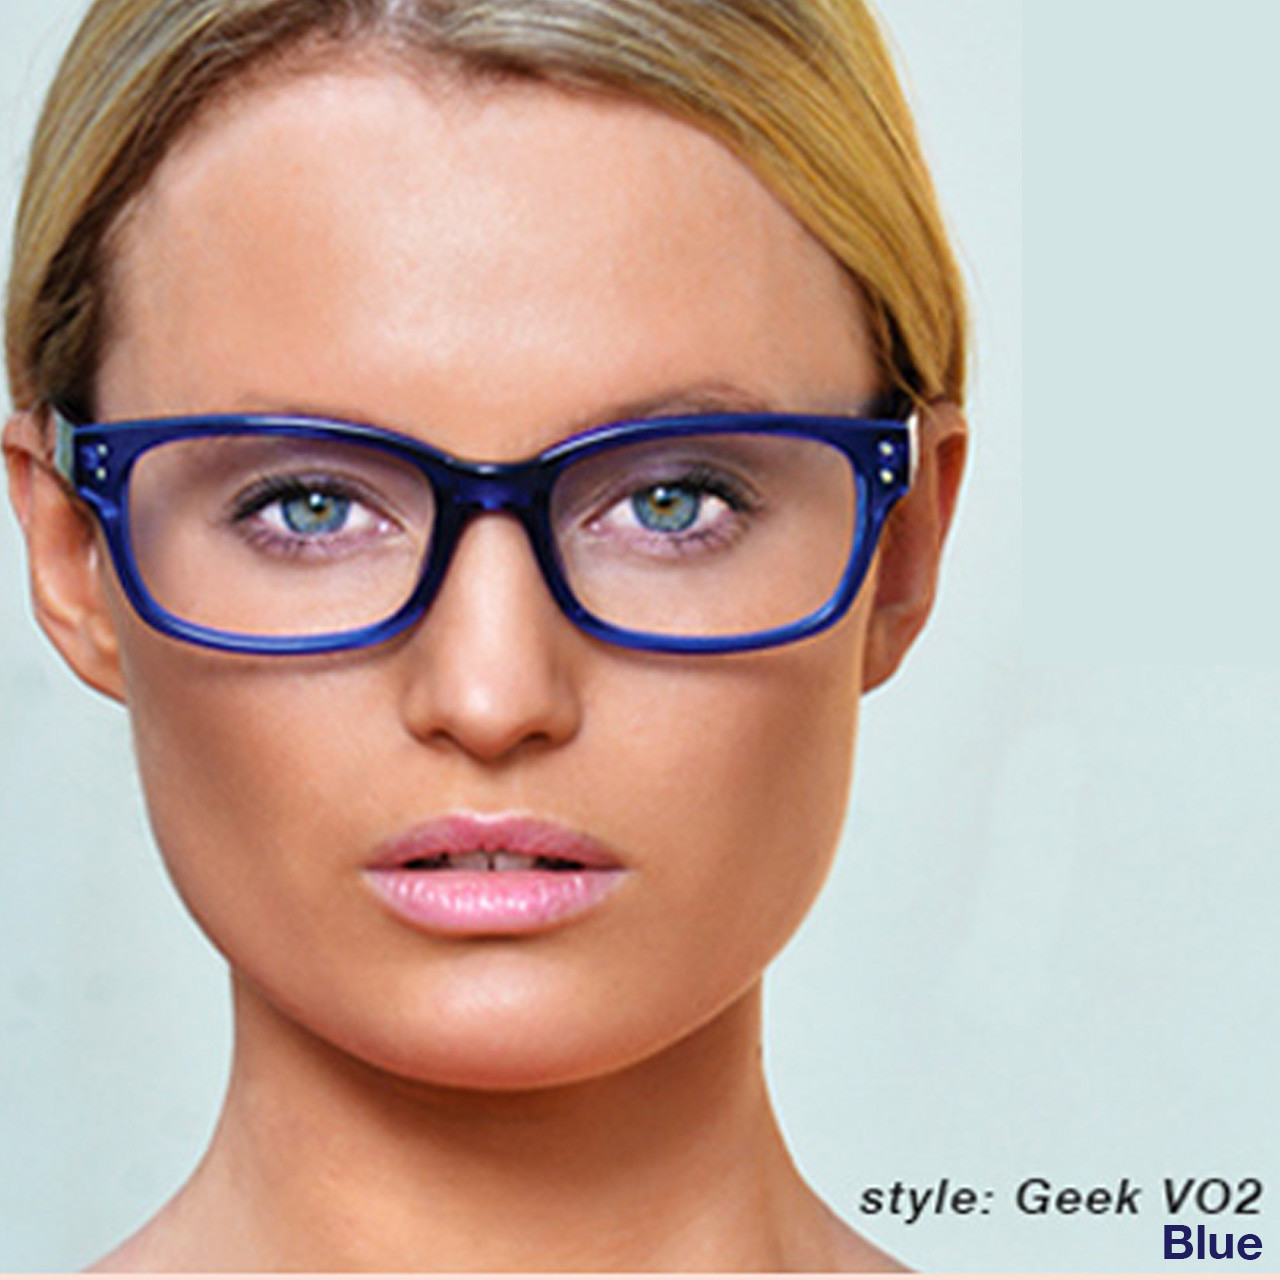 Geek Eyewear VO2 color: Blue As Seen In Vogue